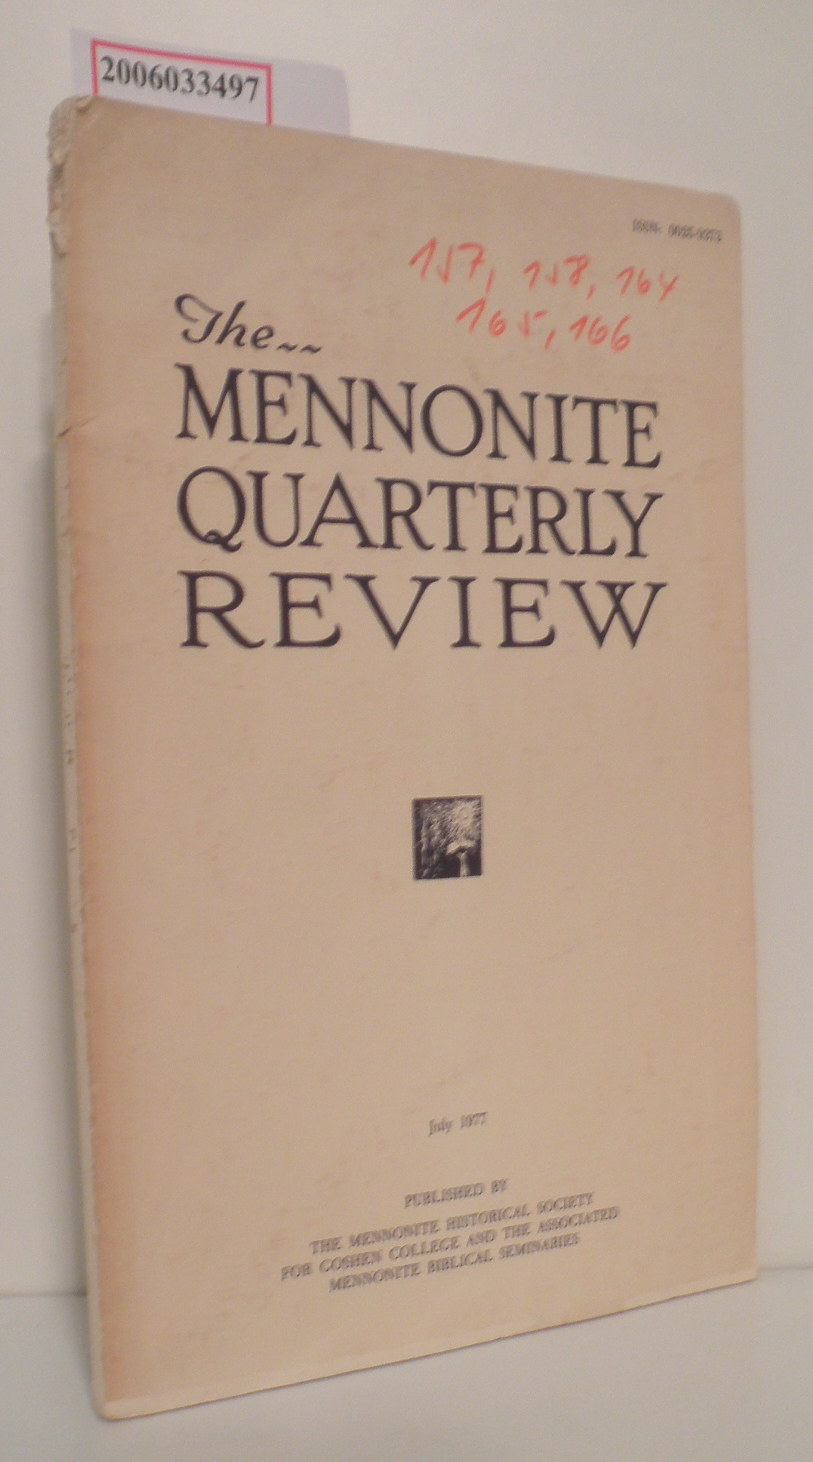 The Mennonite Quarterly Review * A Journal Volume LI * July 1977 * Number Three Devoted to Anabaptist-Mennonite History